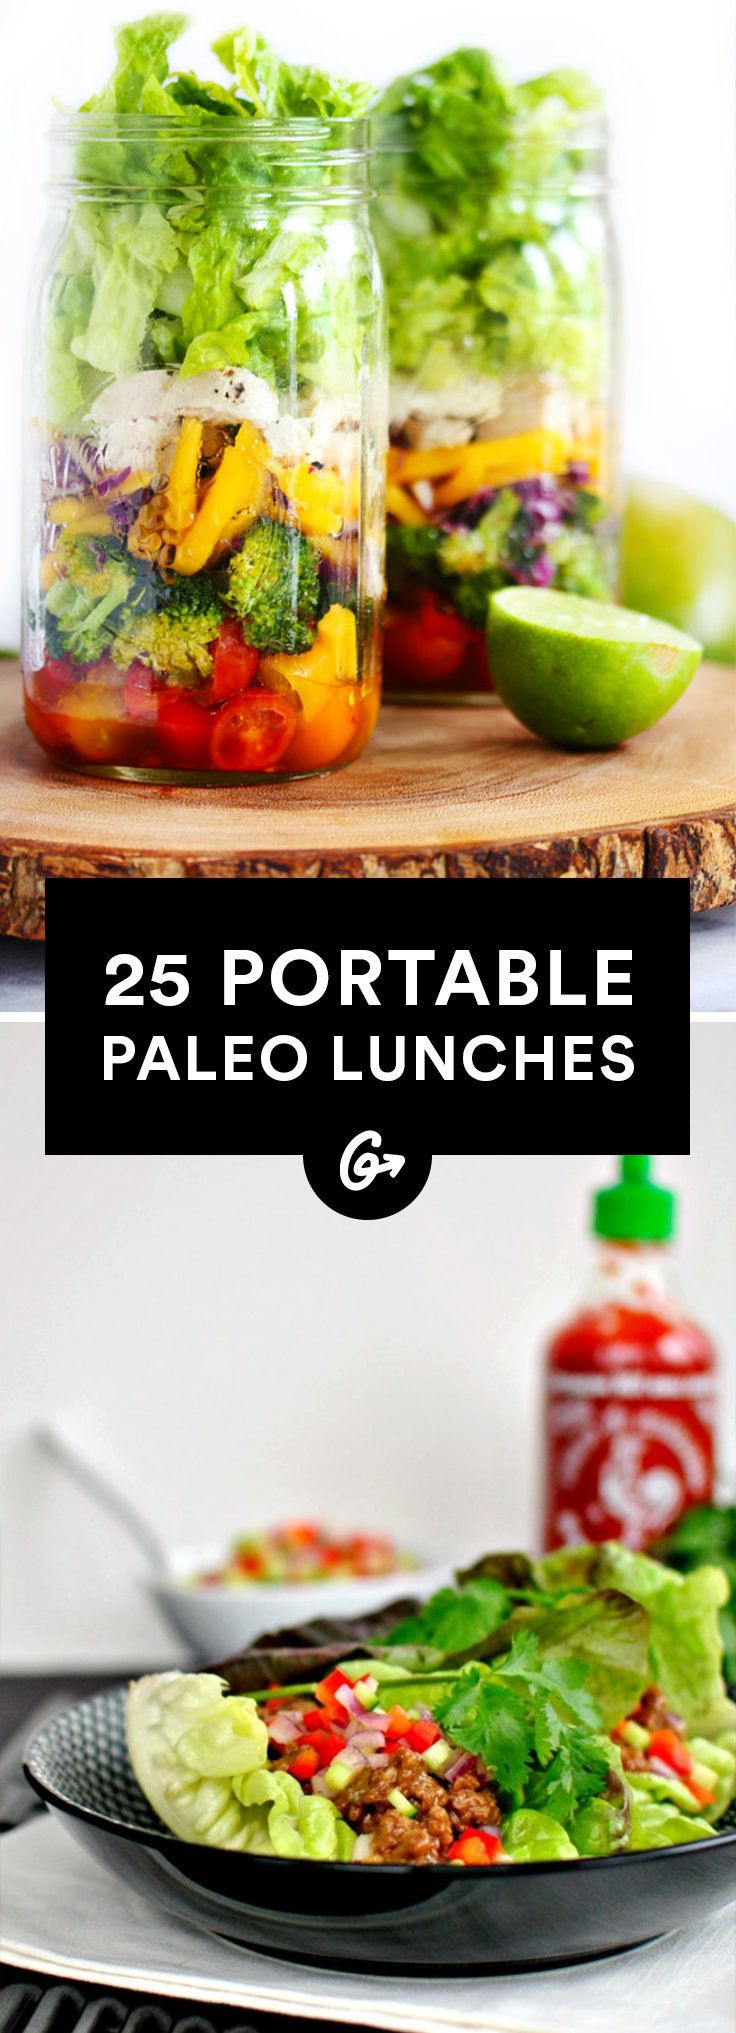 Whatever diet you follow, these filling, flavorful meals will help you stay focused the rest of the day. #paleo #lunch #recipes https://greatist.com/eat/paleo-lunch-recipes